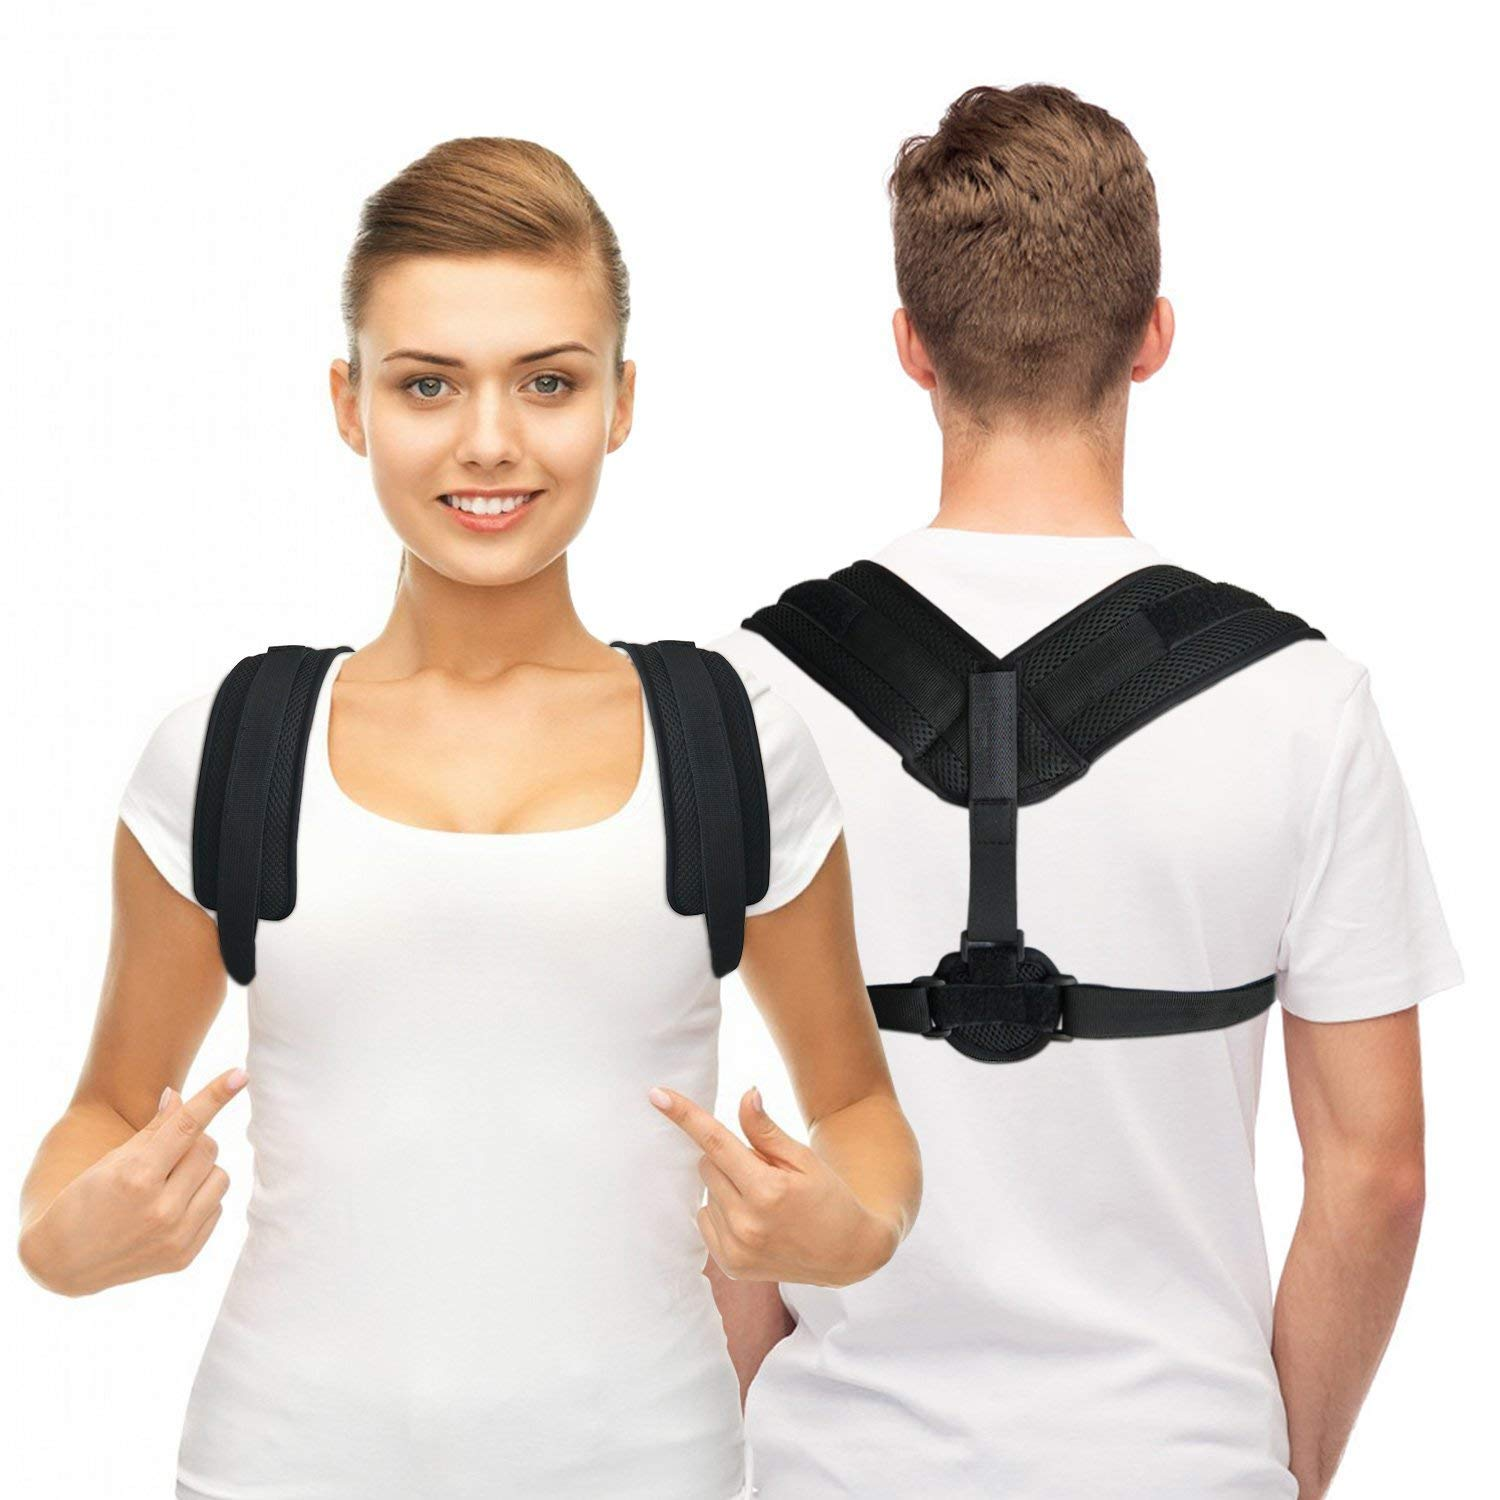 POP VIEW Back Posture Corrector Clavicle Support Brace Women & Men Improve Posture, Prevent Slouching Upper Back Pain Relief